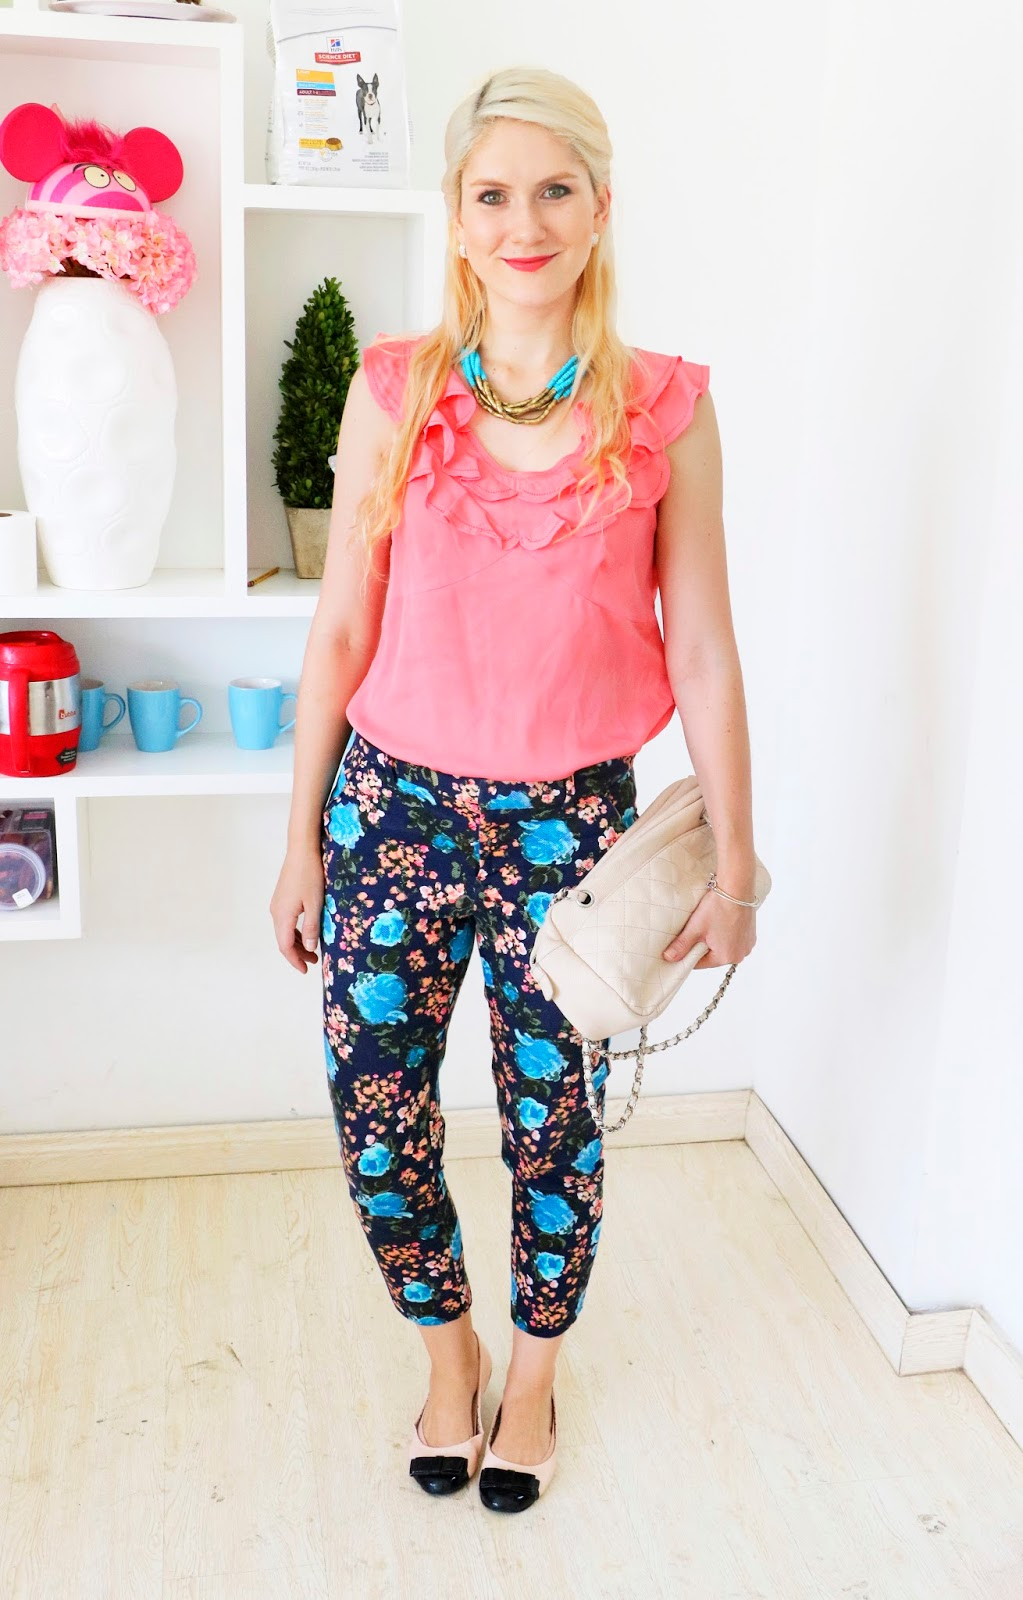 Click through for more work cute outfit ideas